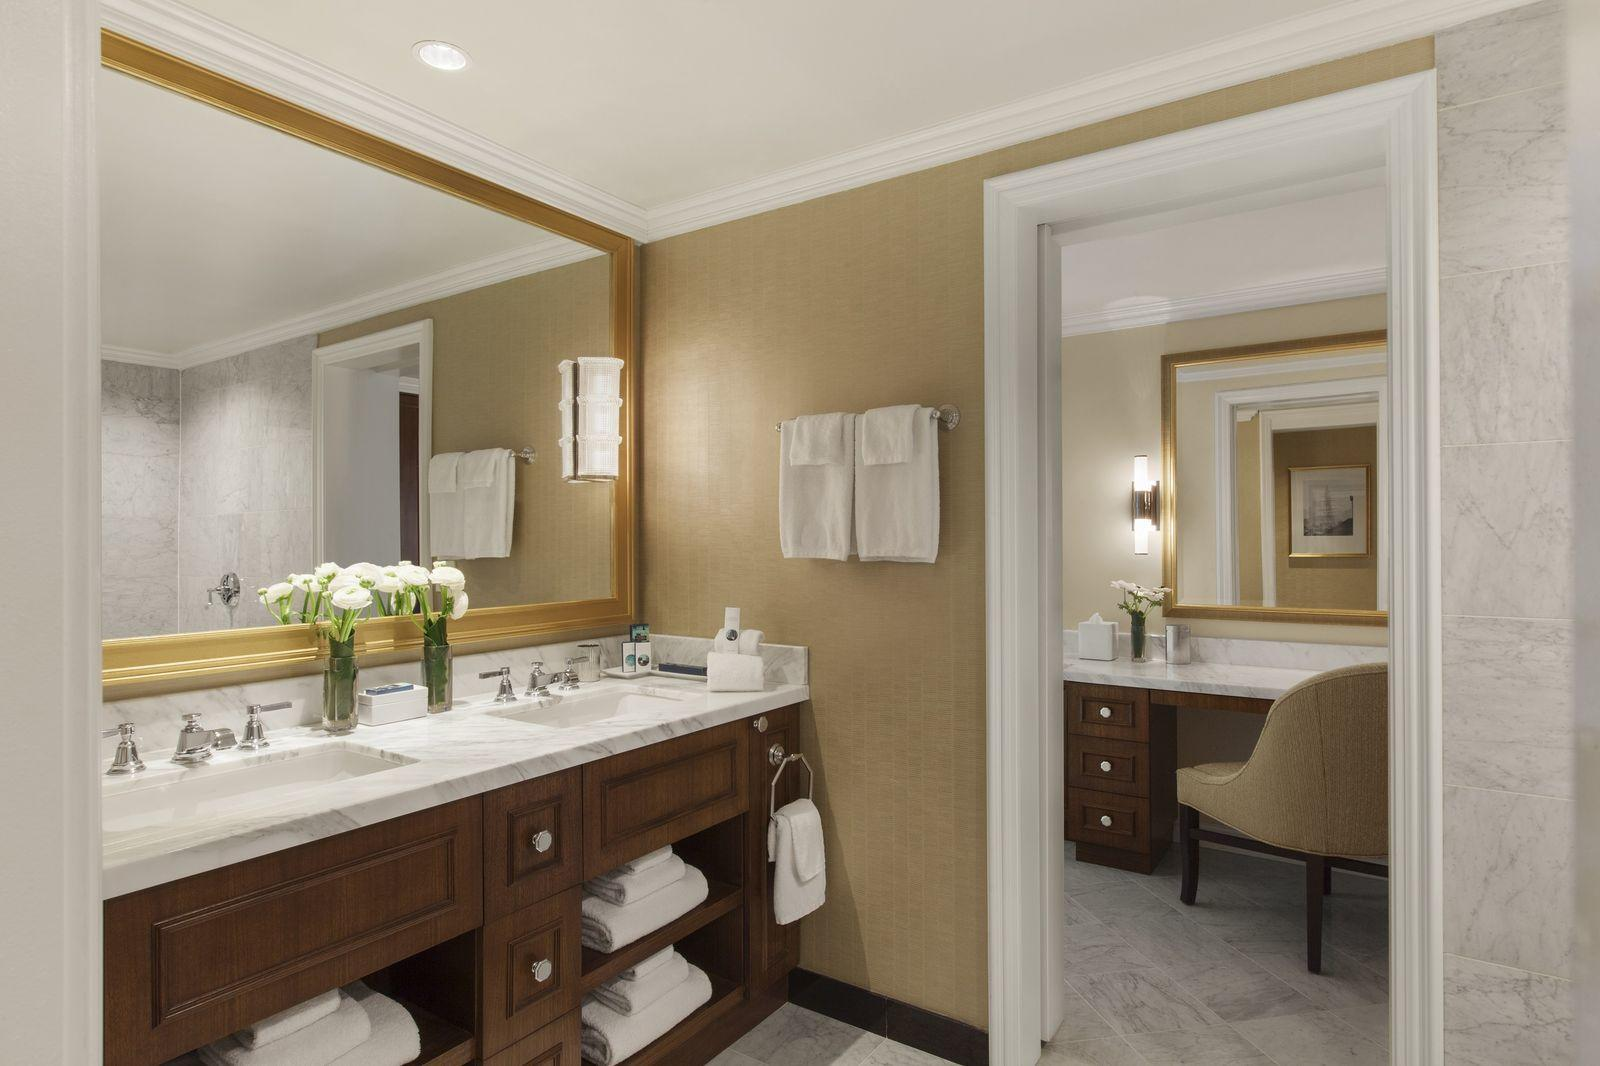 Expansive hotel bathroom